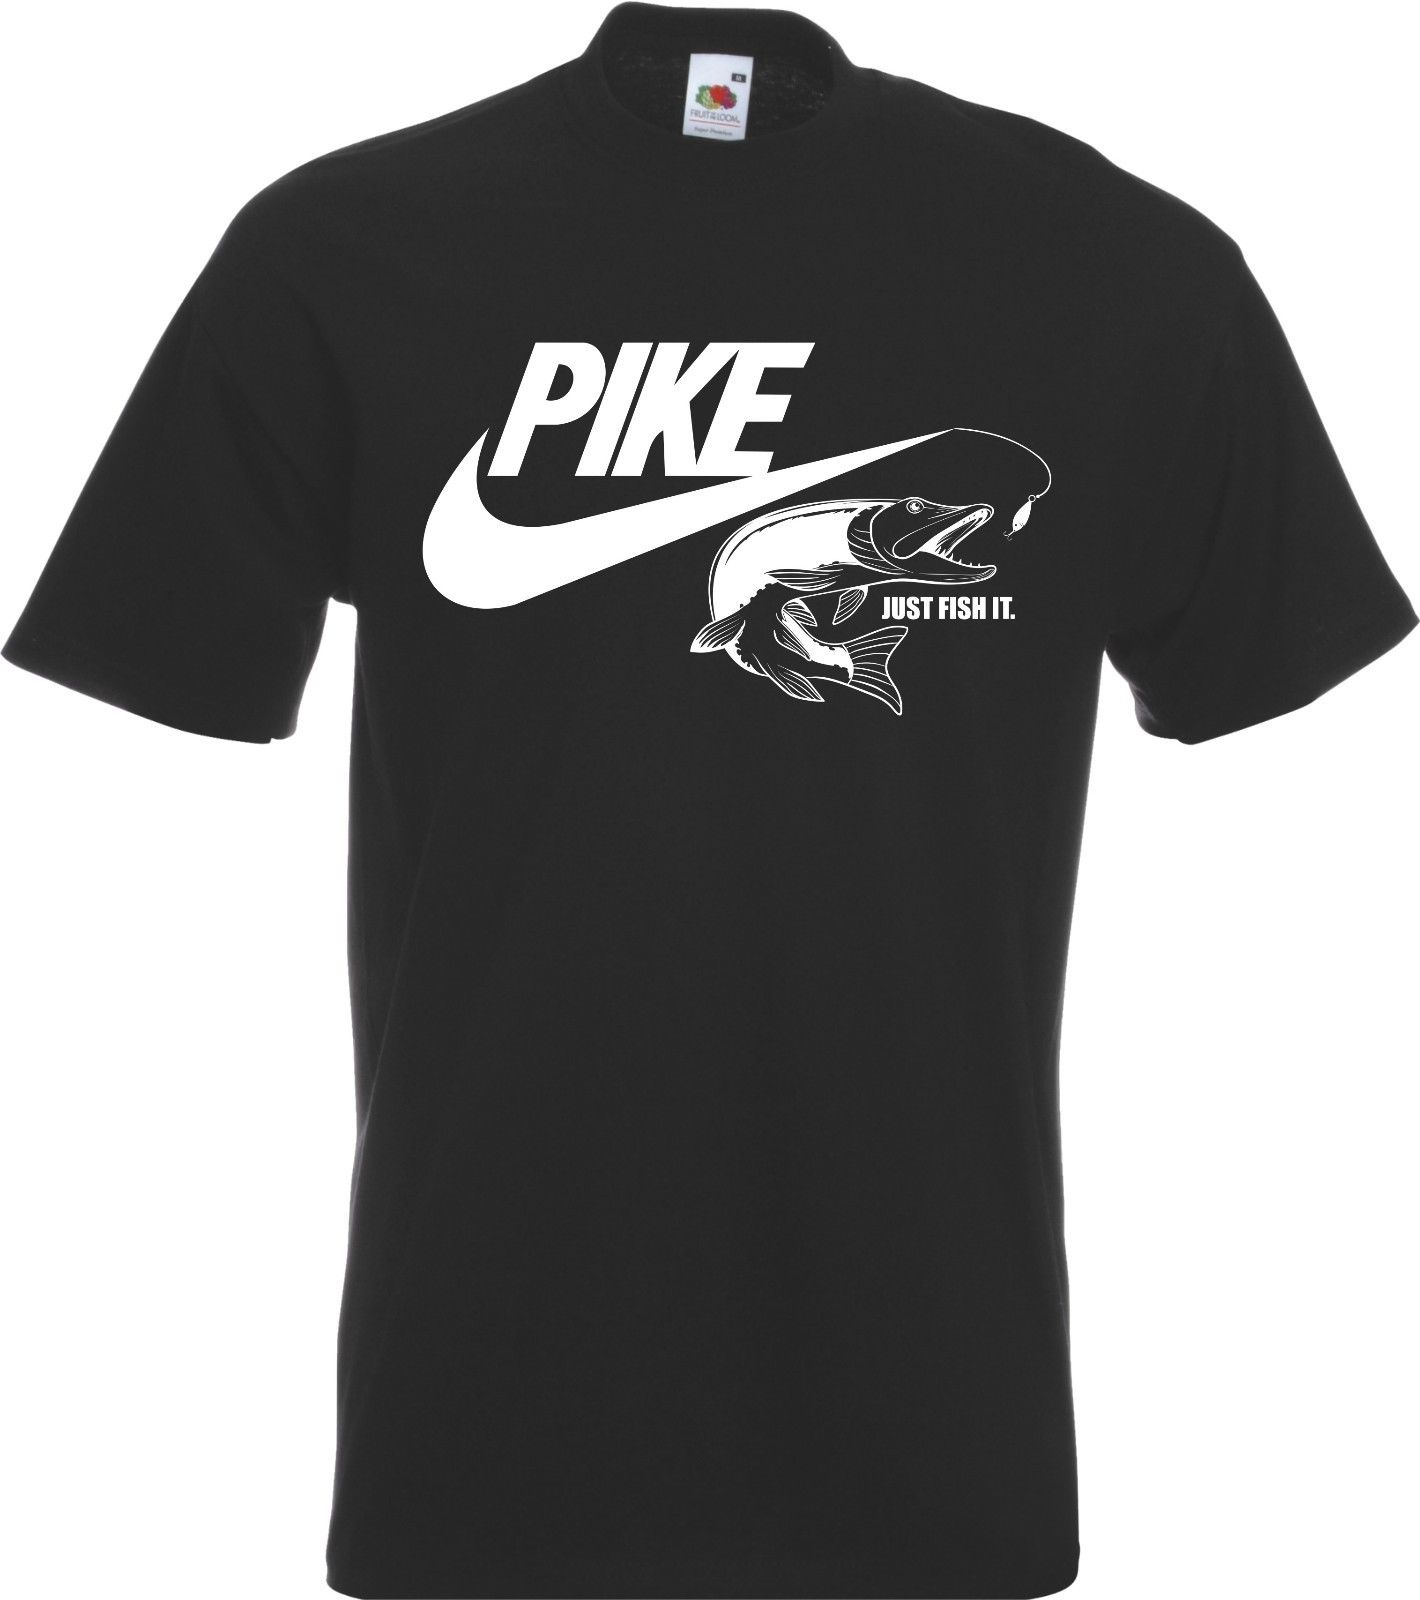 Pike Fish Fisherman Angler   T  -  Shirt   New   T     Shirts   Funny Tops Tee New Unisex Funny High Quality free shippingCool Casual pride